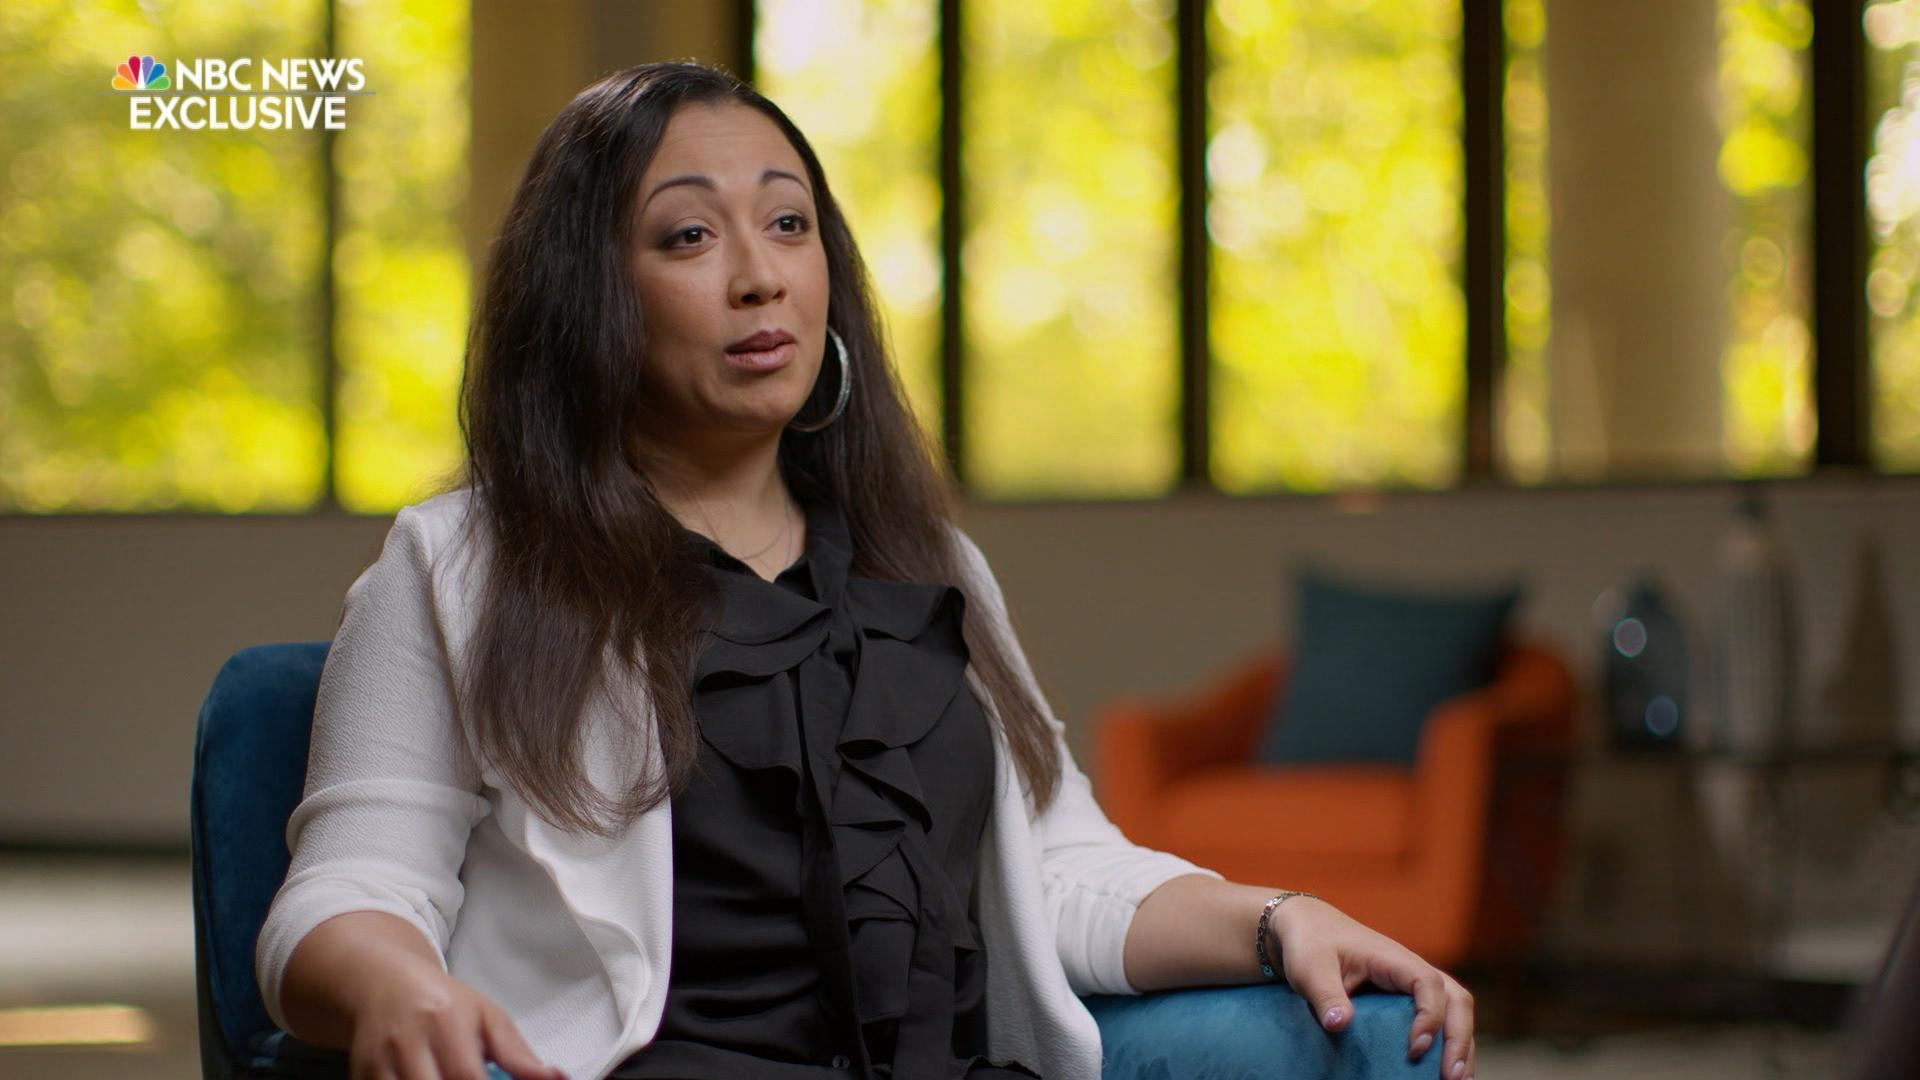 Exclusive: Cyntoia Brown-Long was 'nervous' about celebrity attention